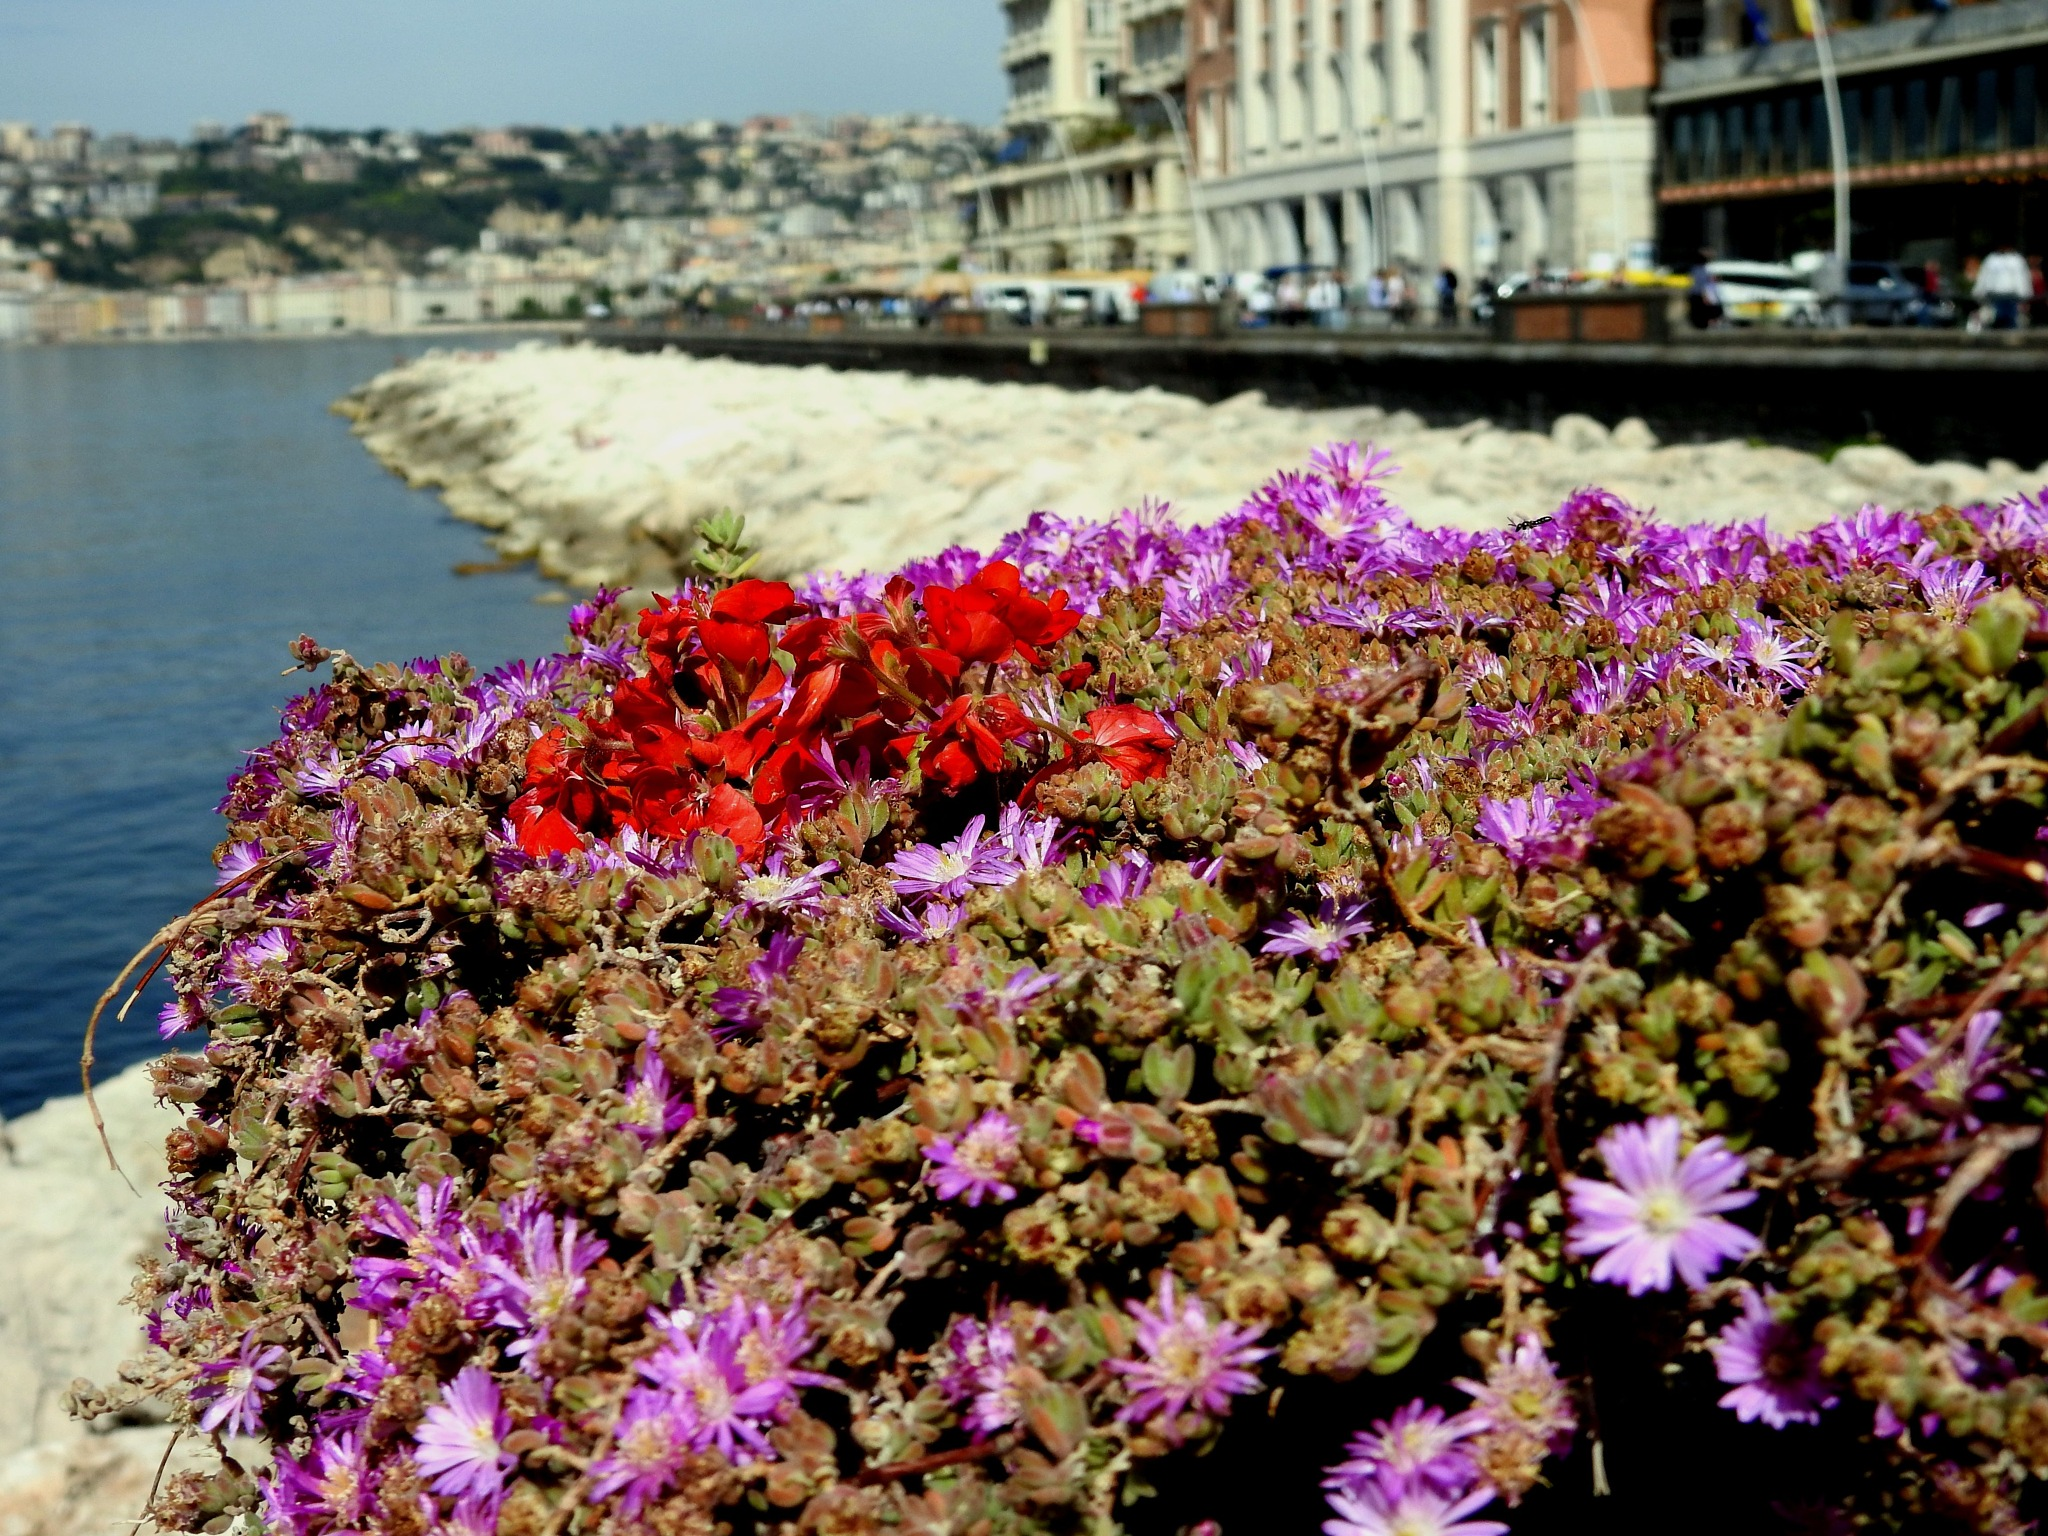 Naples - Flowers With Landscape by Arnaldo De Lisio